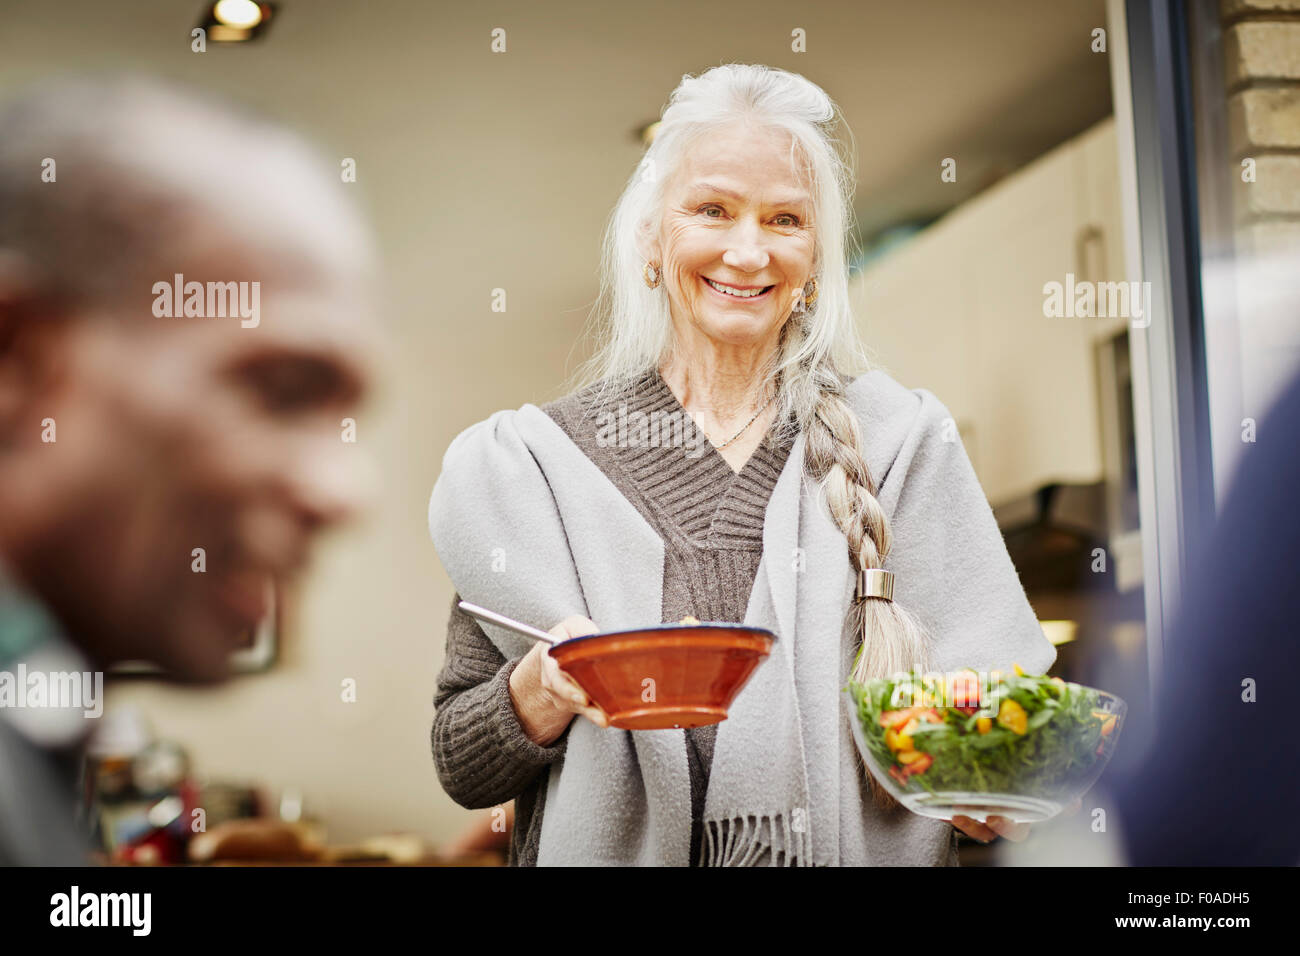 Senior woman carrying bowls of salad outside Stock Photo